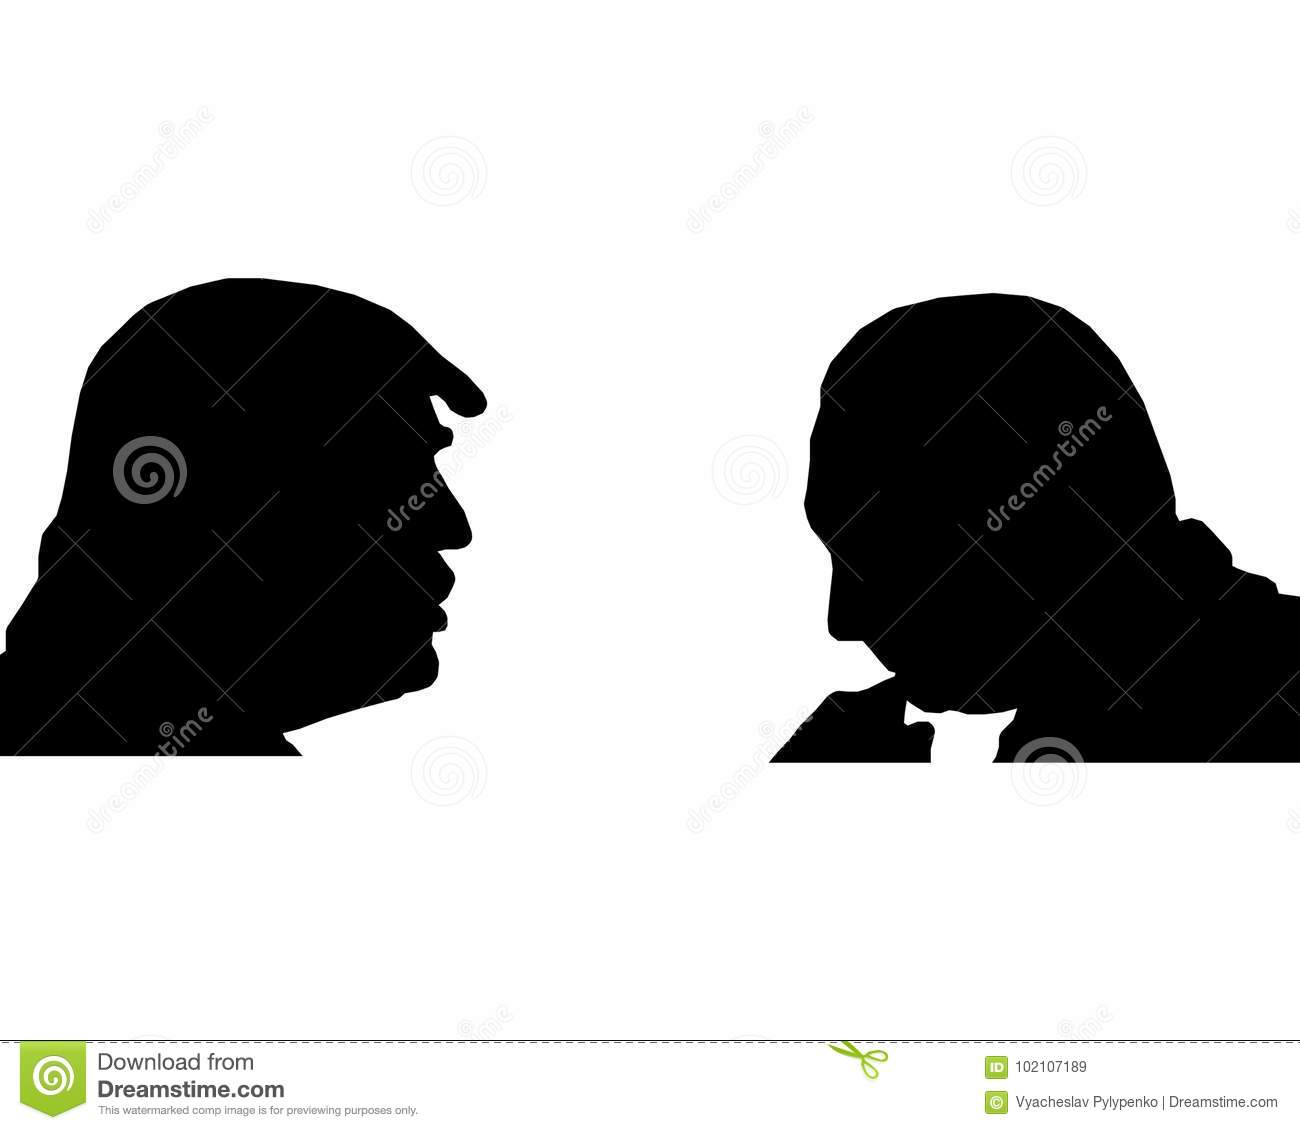 Silhouettes of Trump and Putin